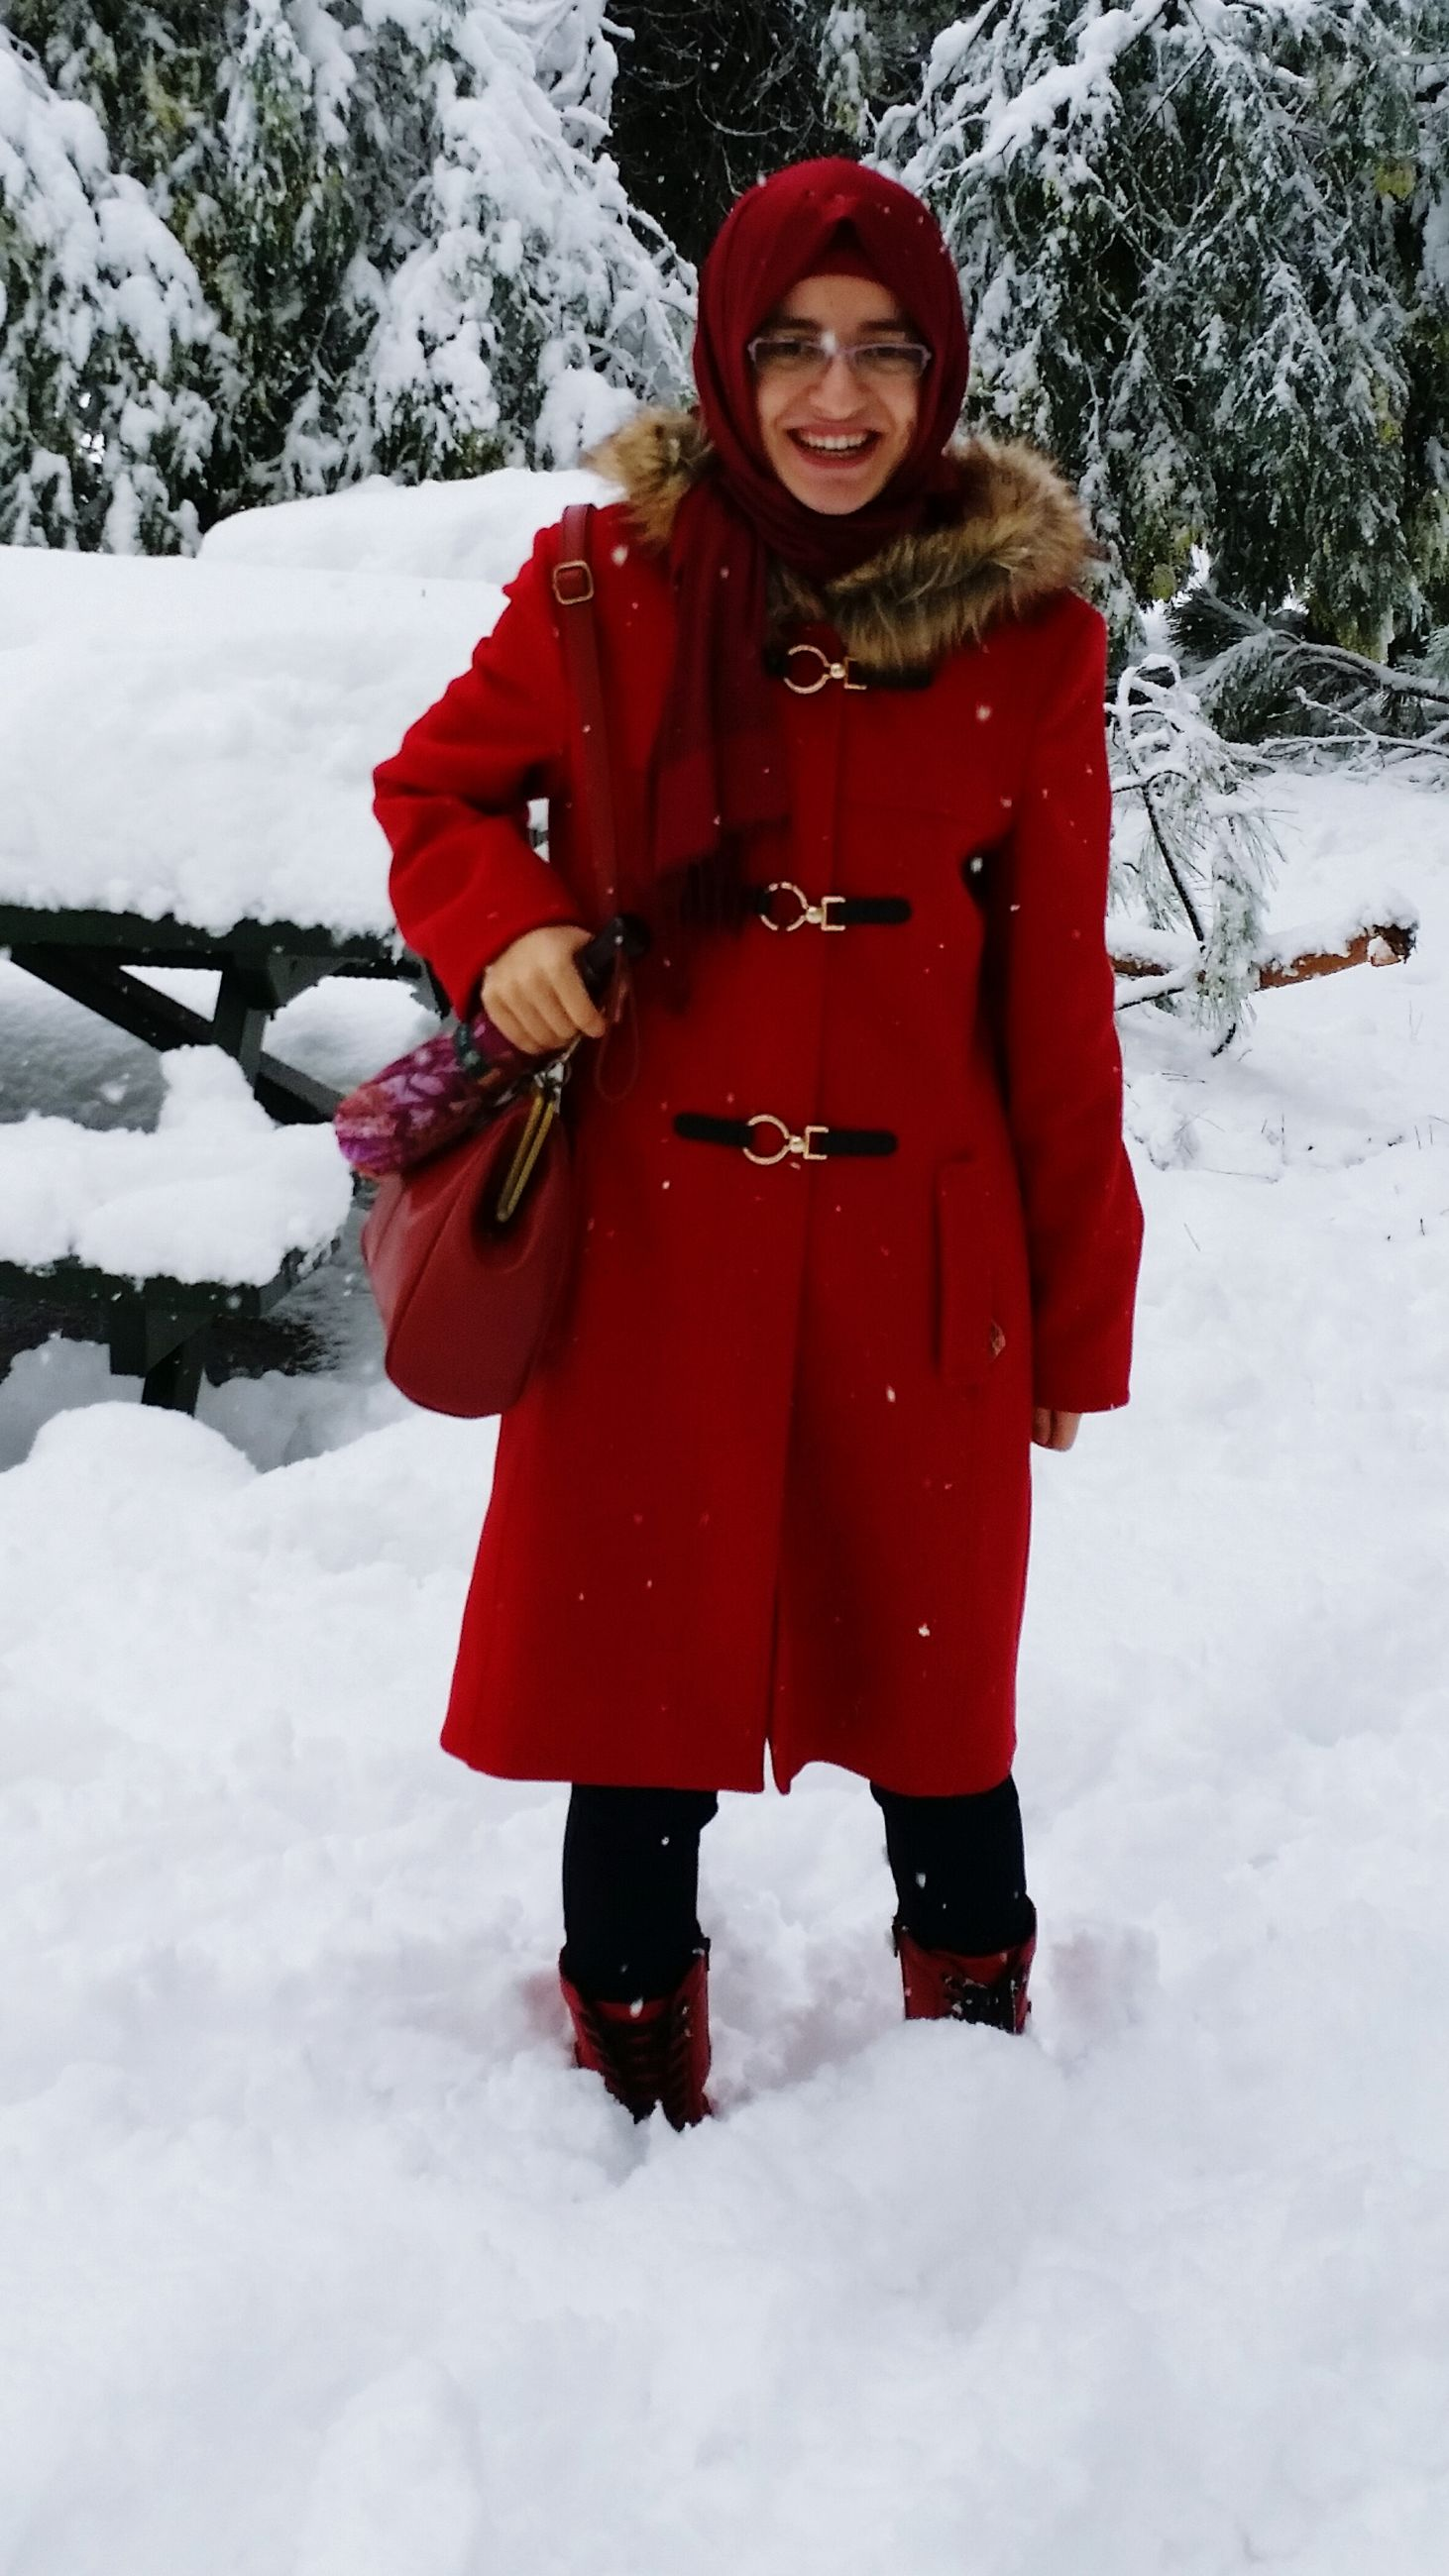 snow, winter, cold temperature, season, weather, warm clothing, red, covering, lifestyles, leisure activity, full length, white color, front view, frozen, portrait, standing, looking at camera, covered